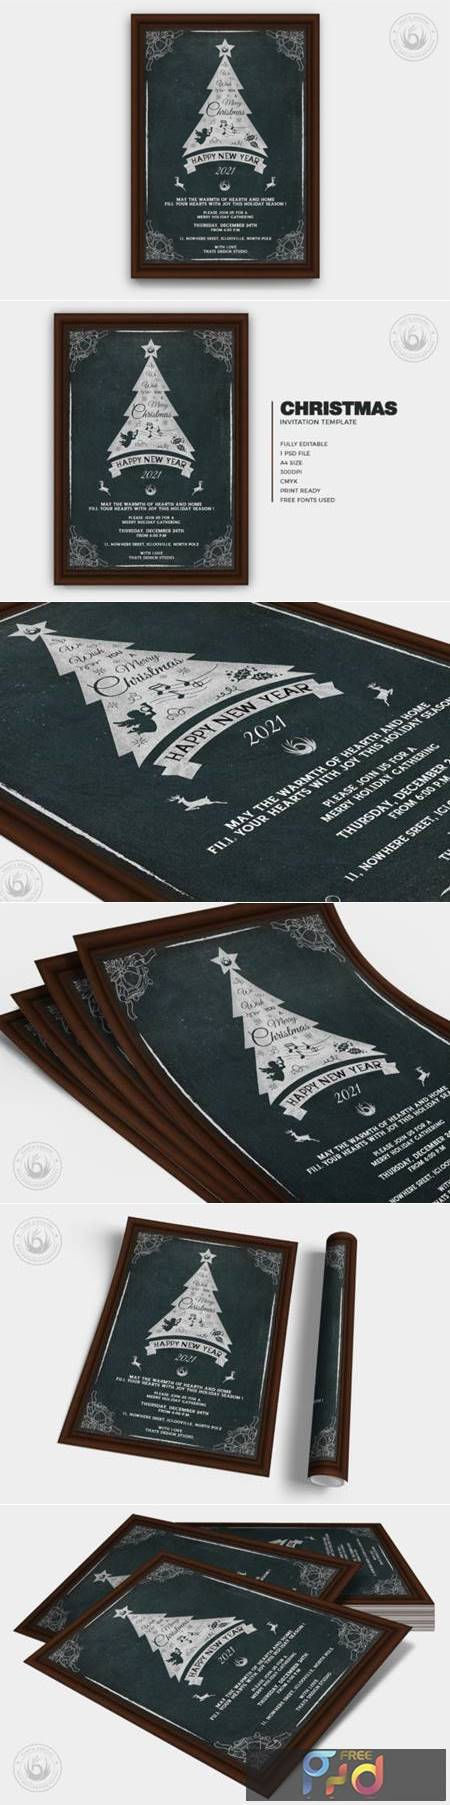 Christmas Invitation Template V5 6916132 1